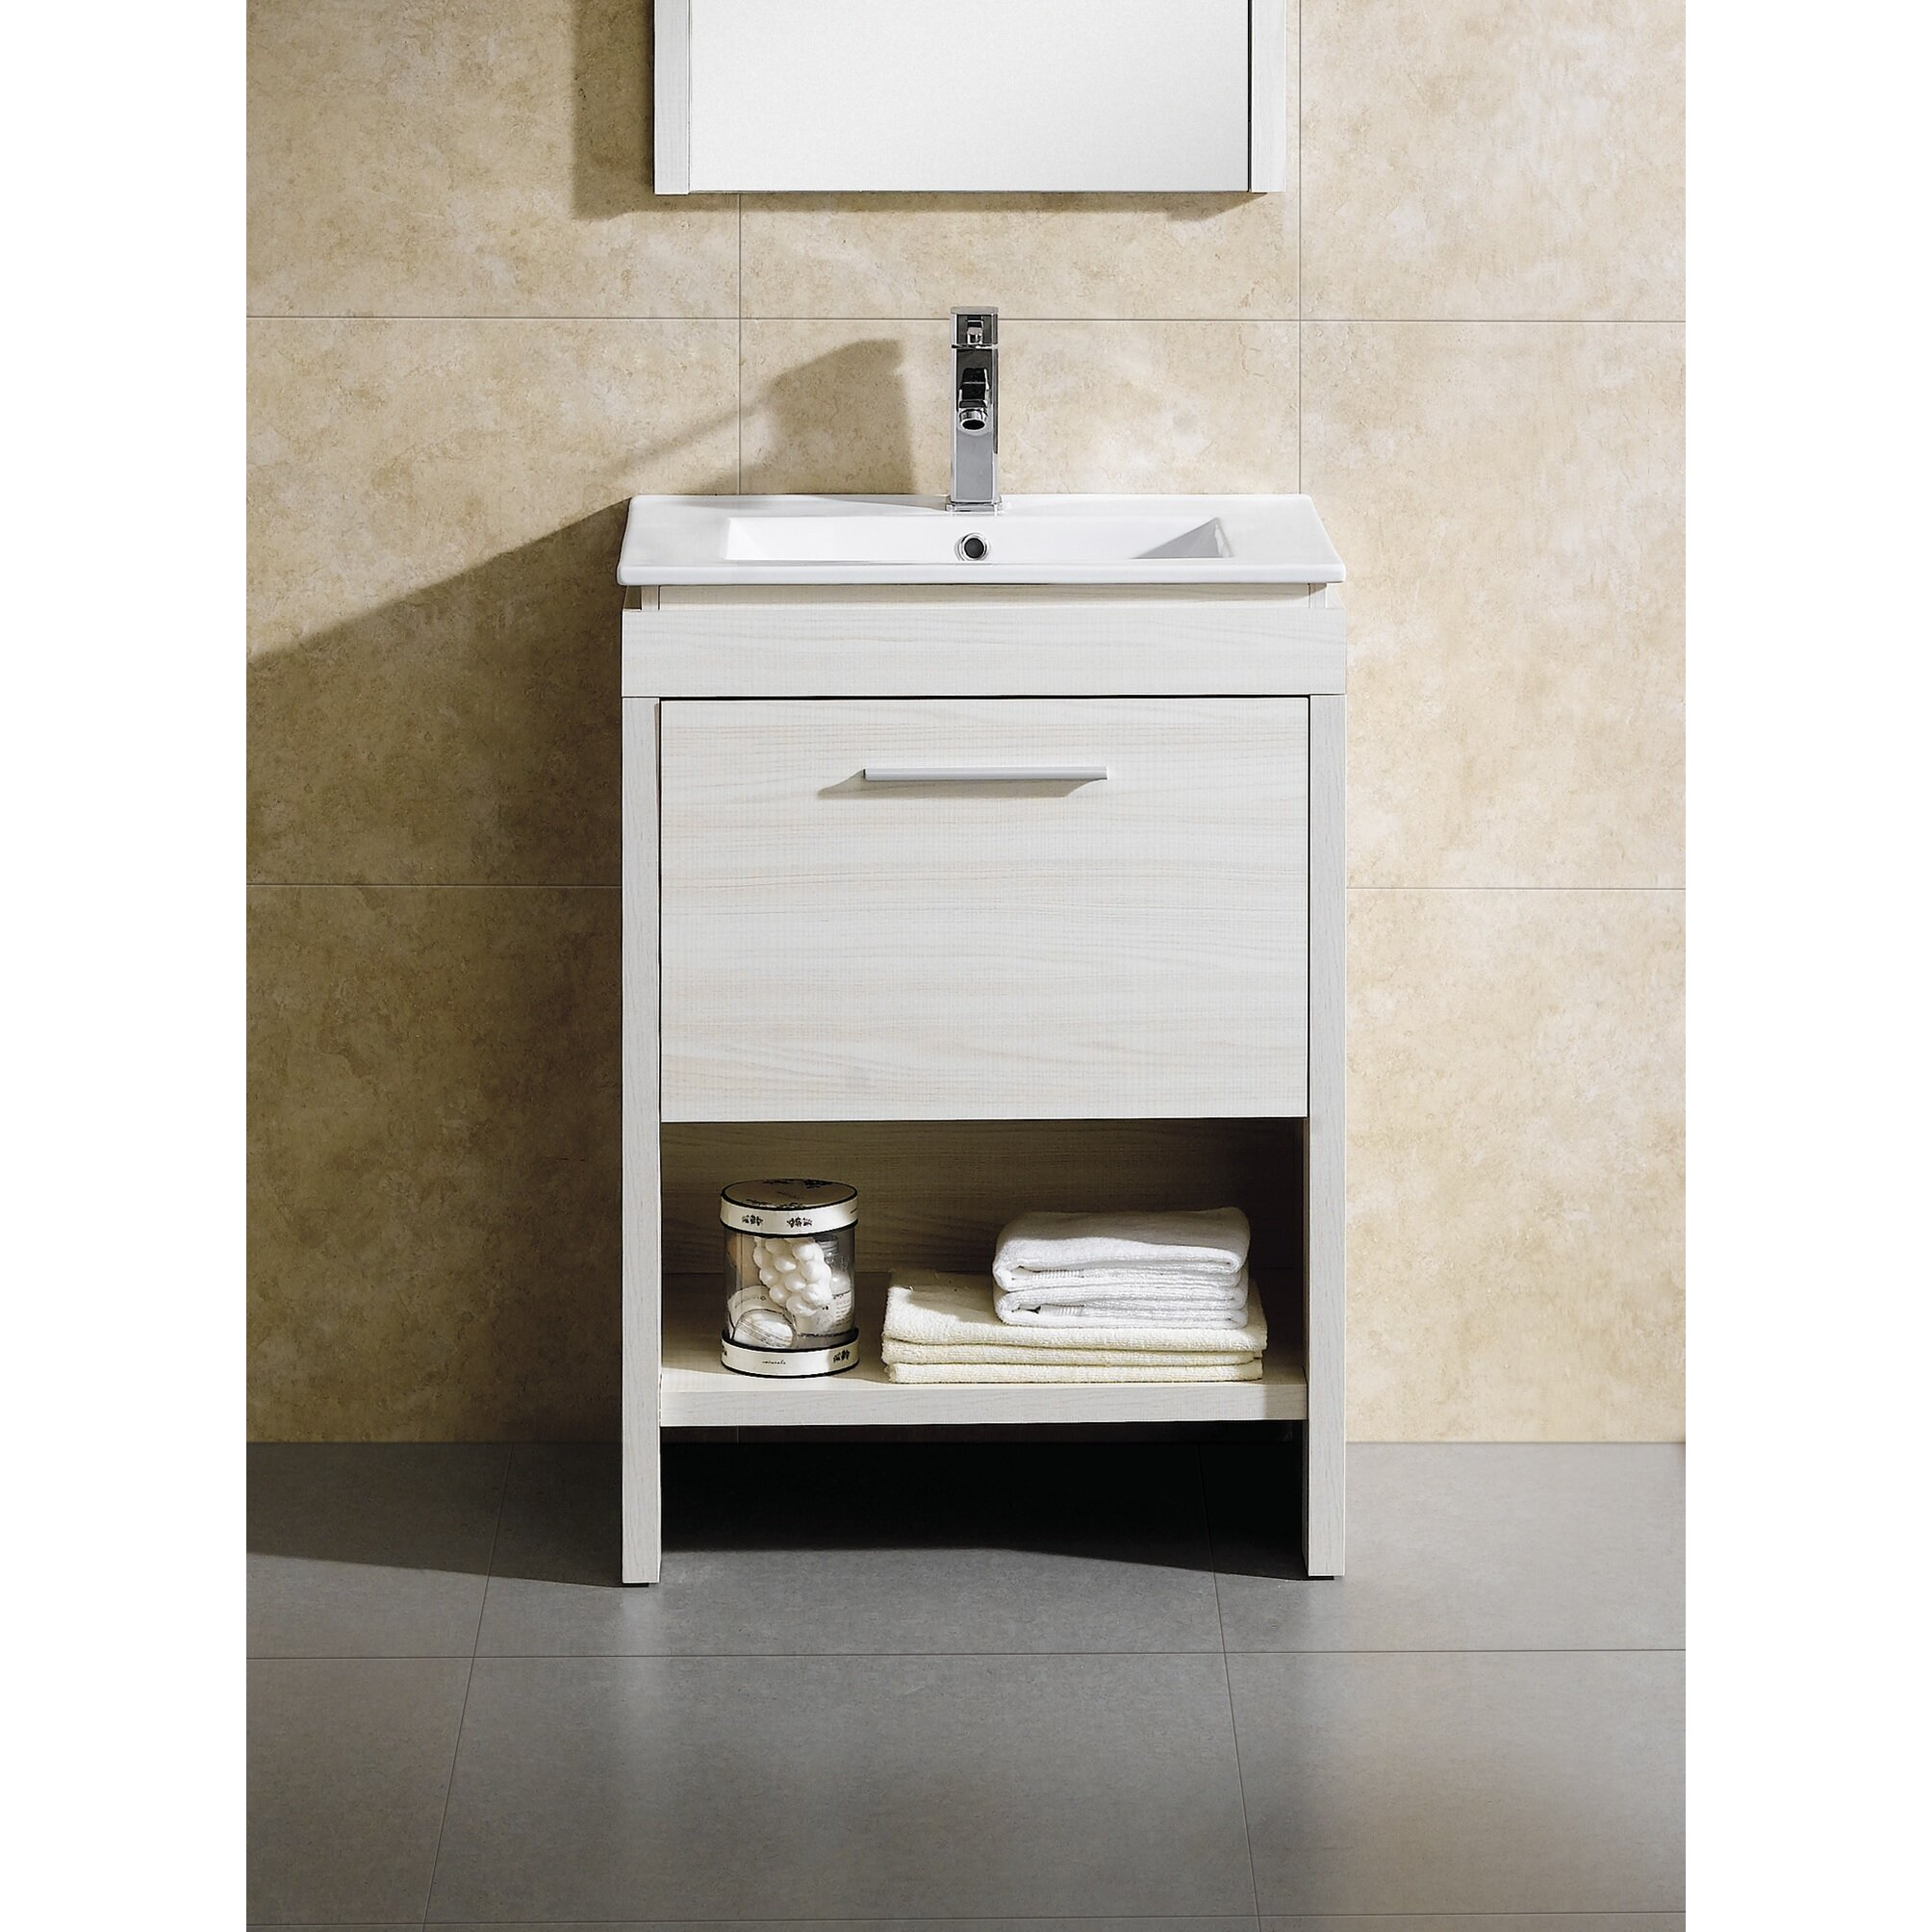 singles in modena Update an ordinary bathroom with the contemporary fine fixtures modena 24 in single bathroom vanity this freestanding, no-frills design features.